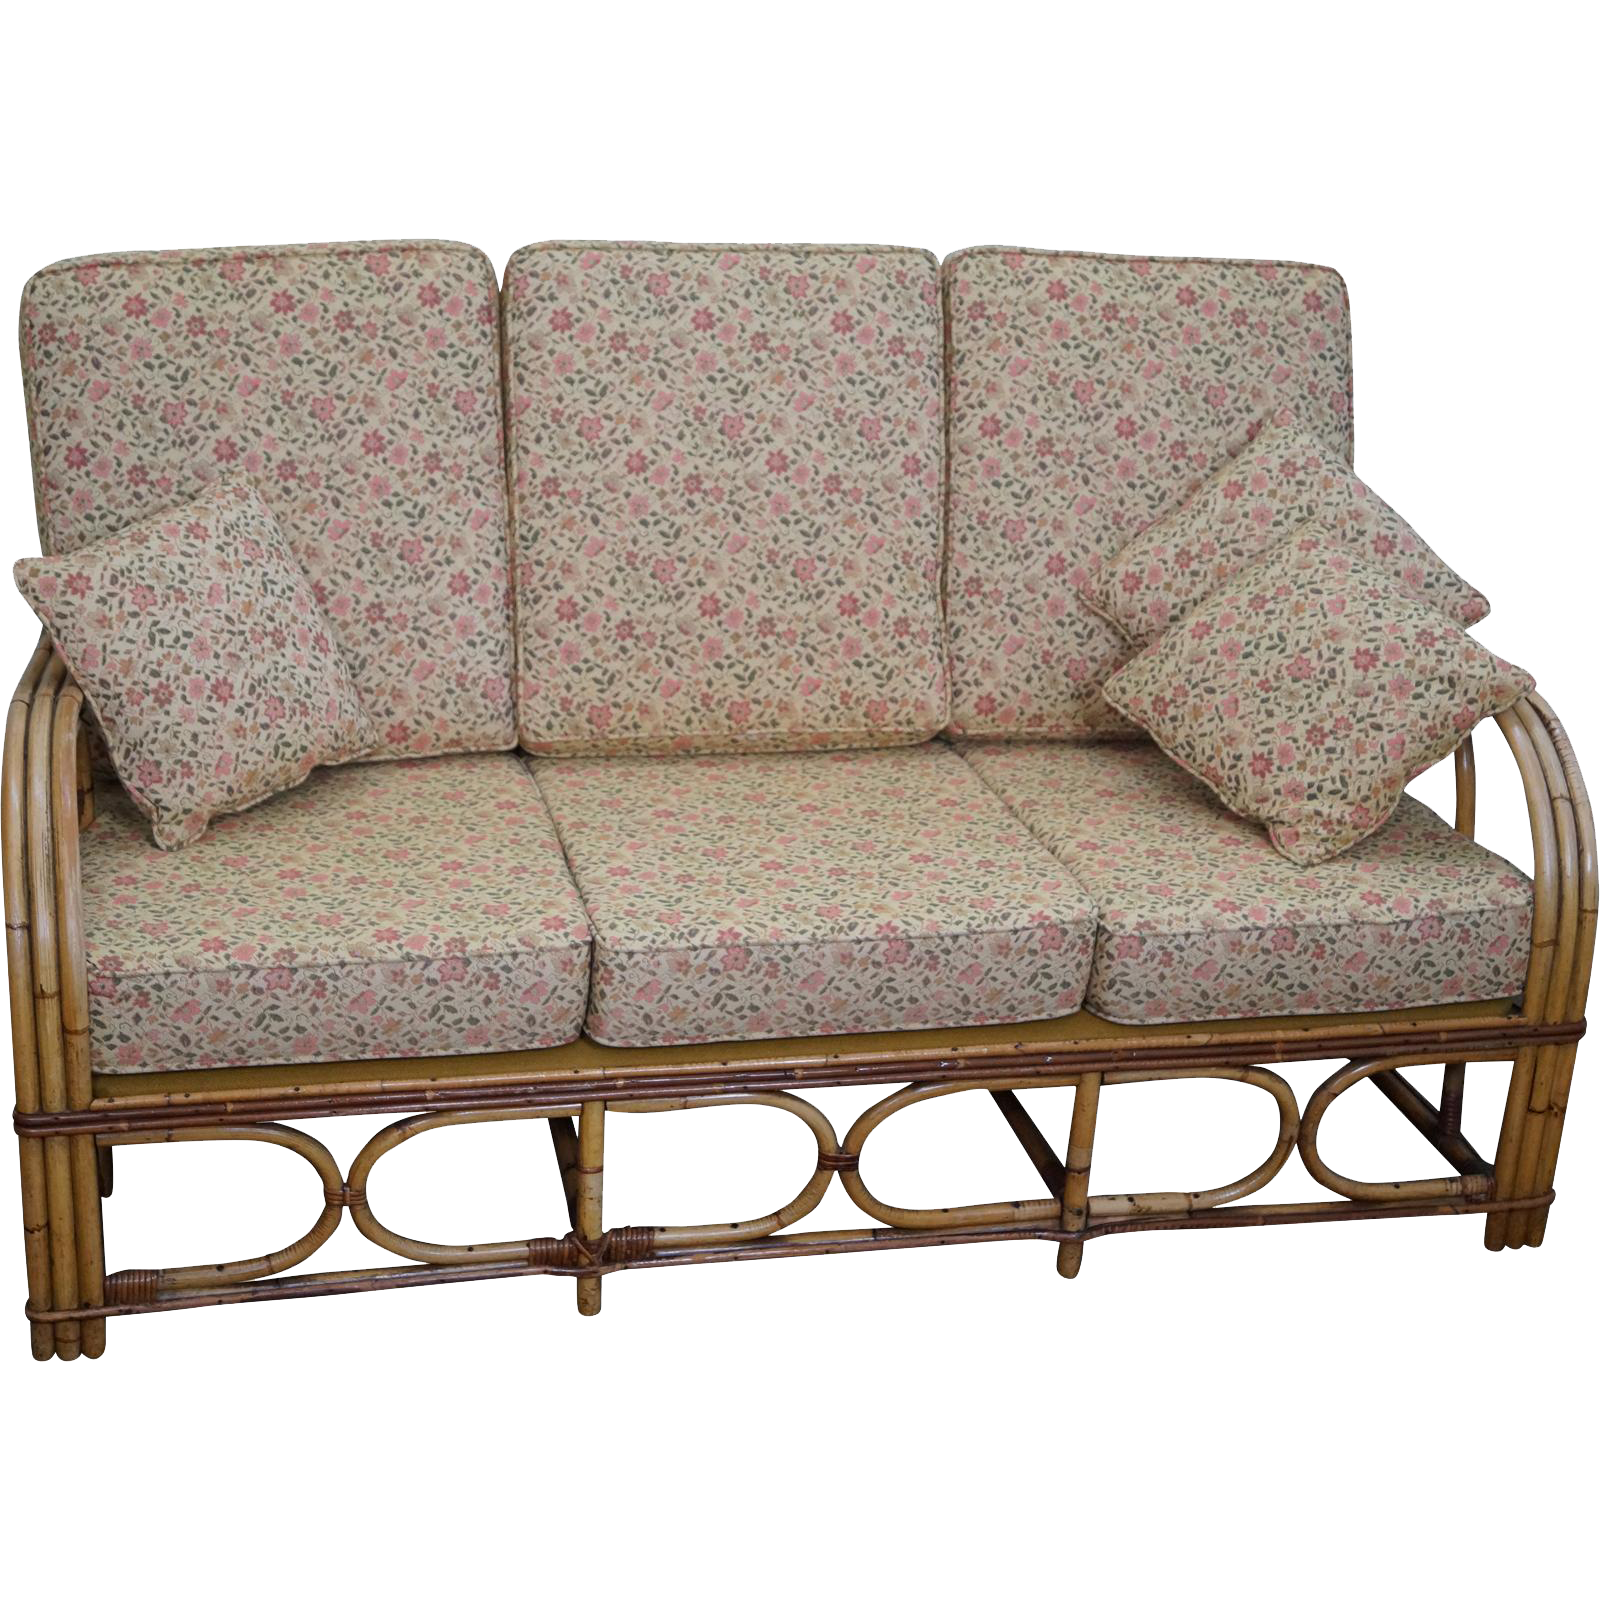 Antique Split Reed Rattan Bamboo Sofa from bucks county  : 99481L from www.rubylane.com size 1600 x 1600 png 2311kB